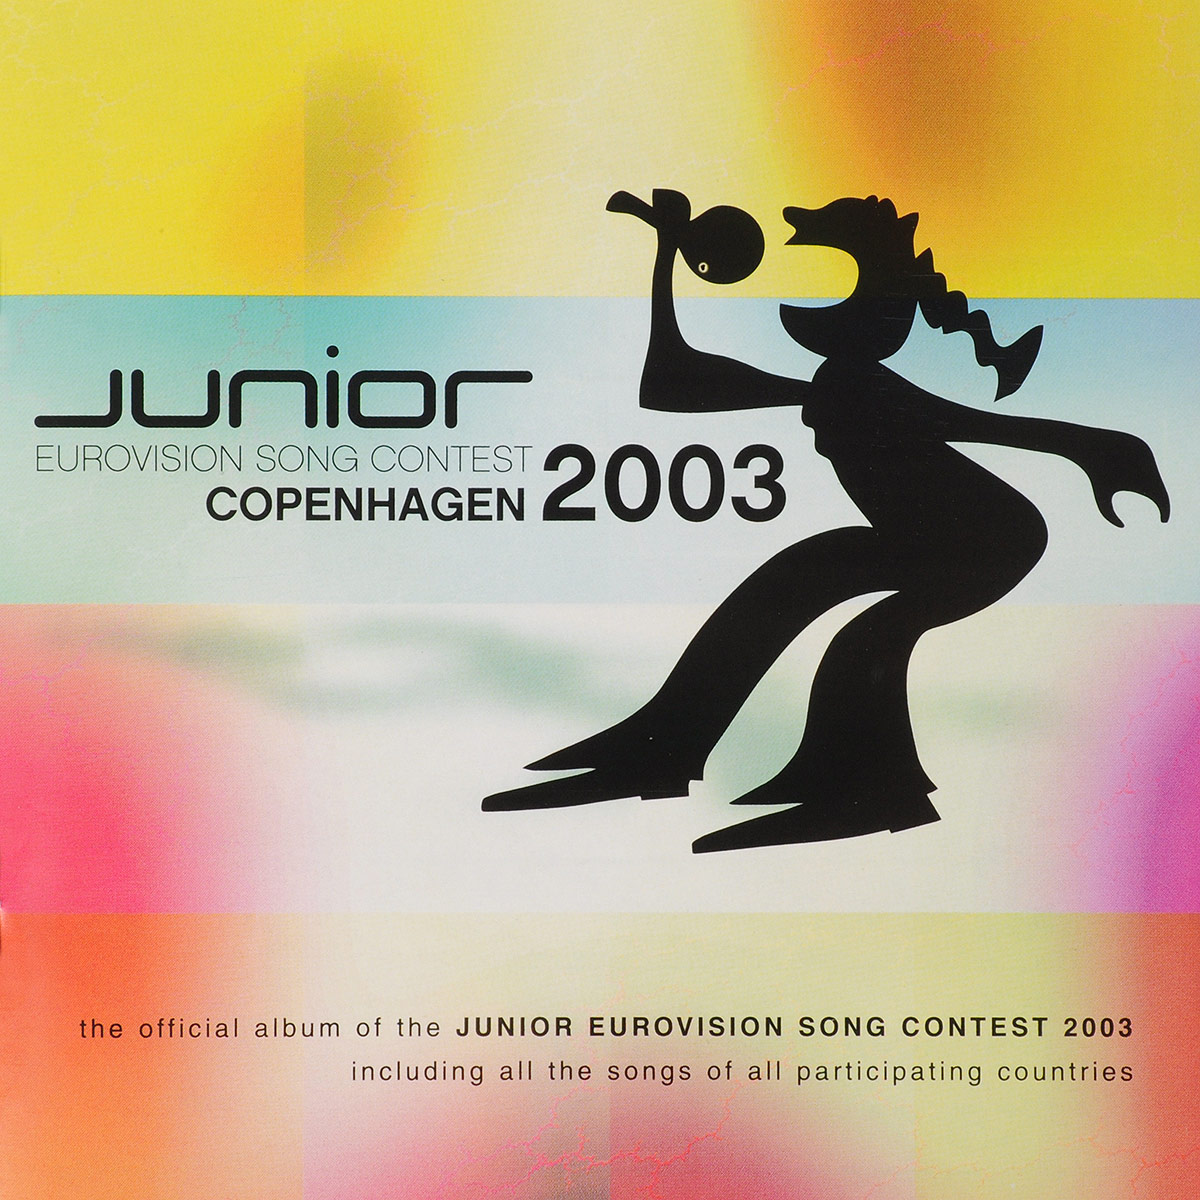 VARIOUS ARTISTS. JUNIOR EUROVISION SONG CONTEST COPENHAGEN 2003 a song for summer